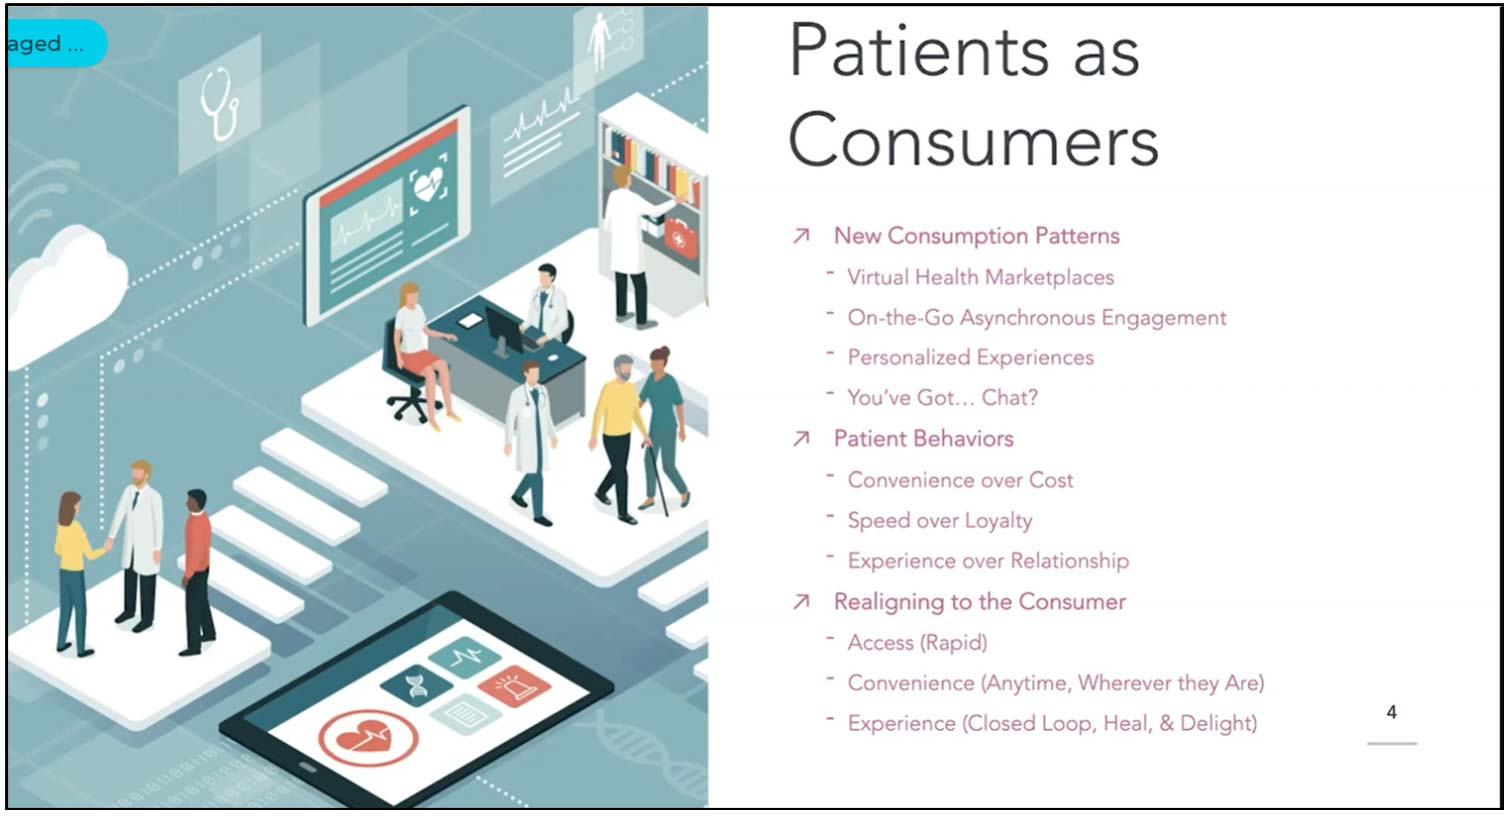 2020 healthcare innovations address shifting consumer expectations, patient expectations